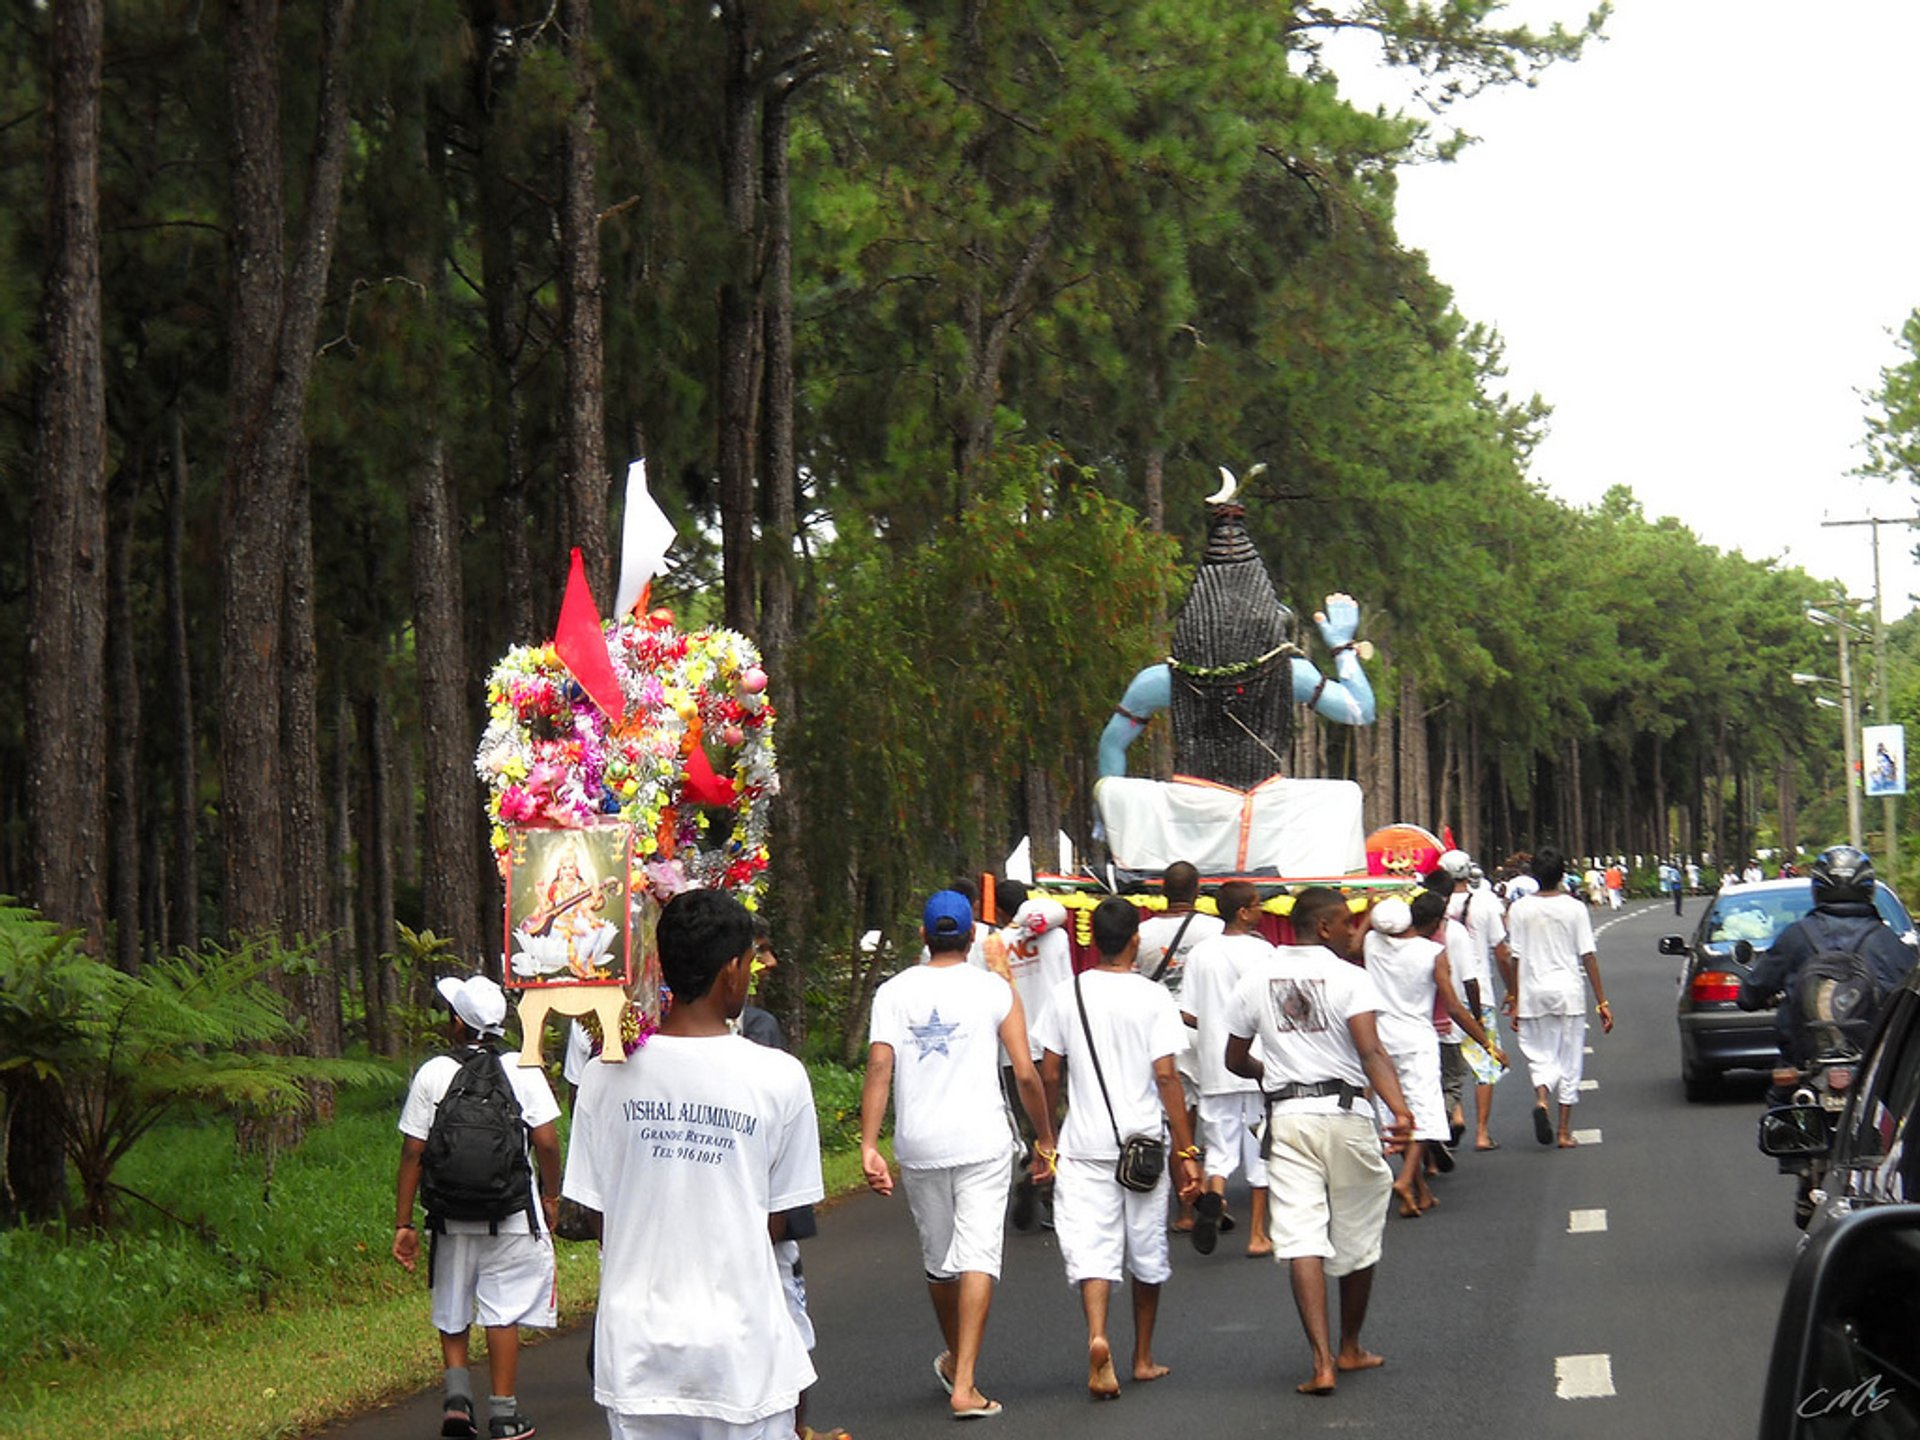 Best time for Maha Shivaratree Celebration in Mauritius 2020